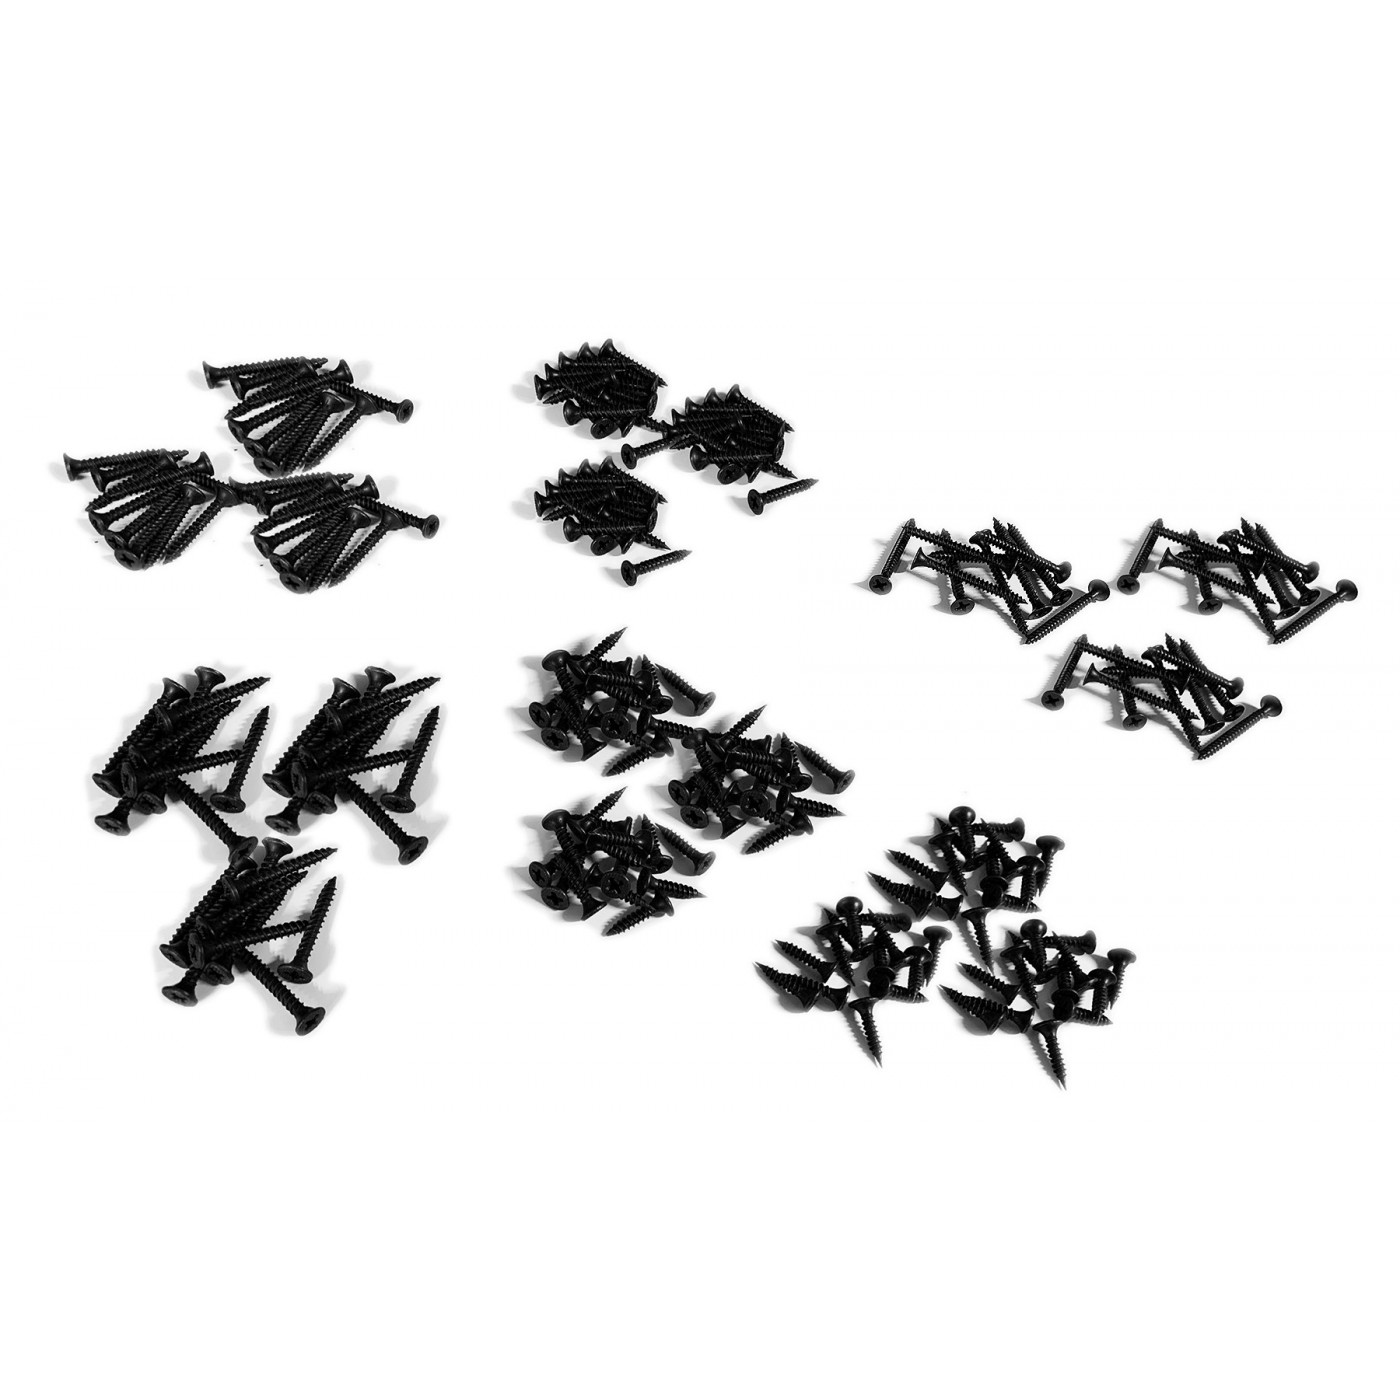 Set of 210 black screws (for wood, plasterboard and more, combi